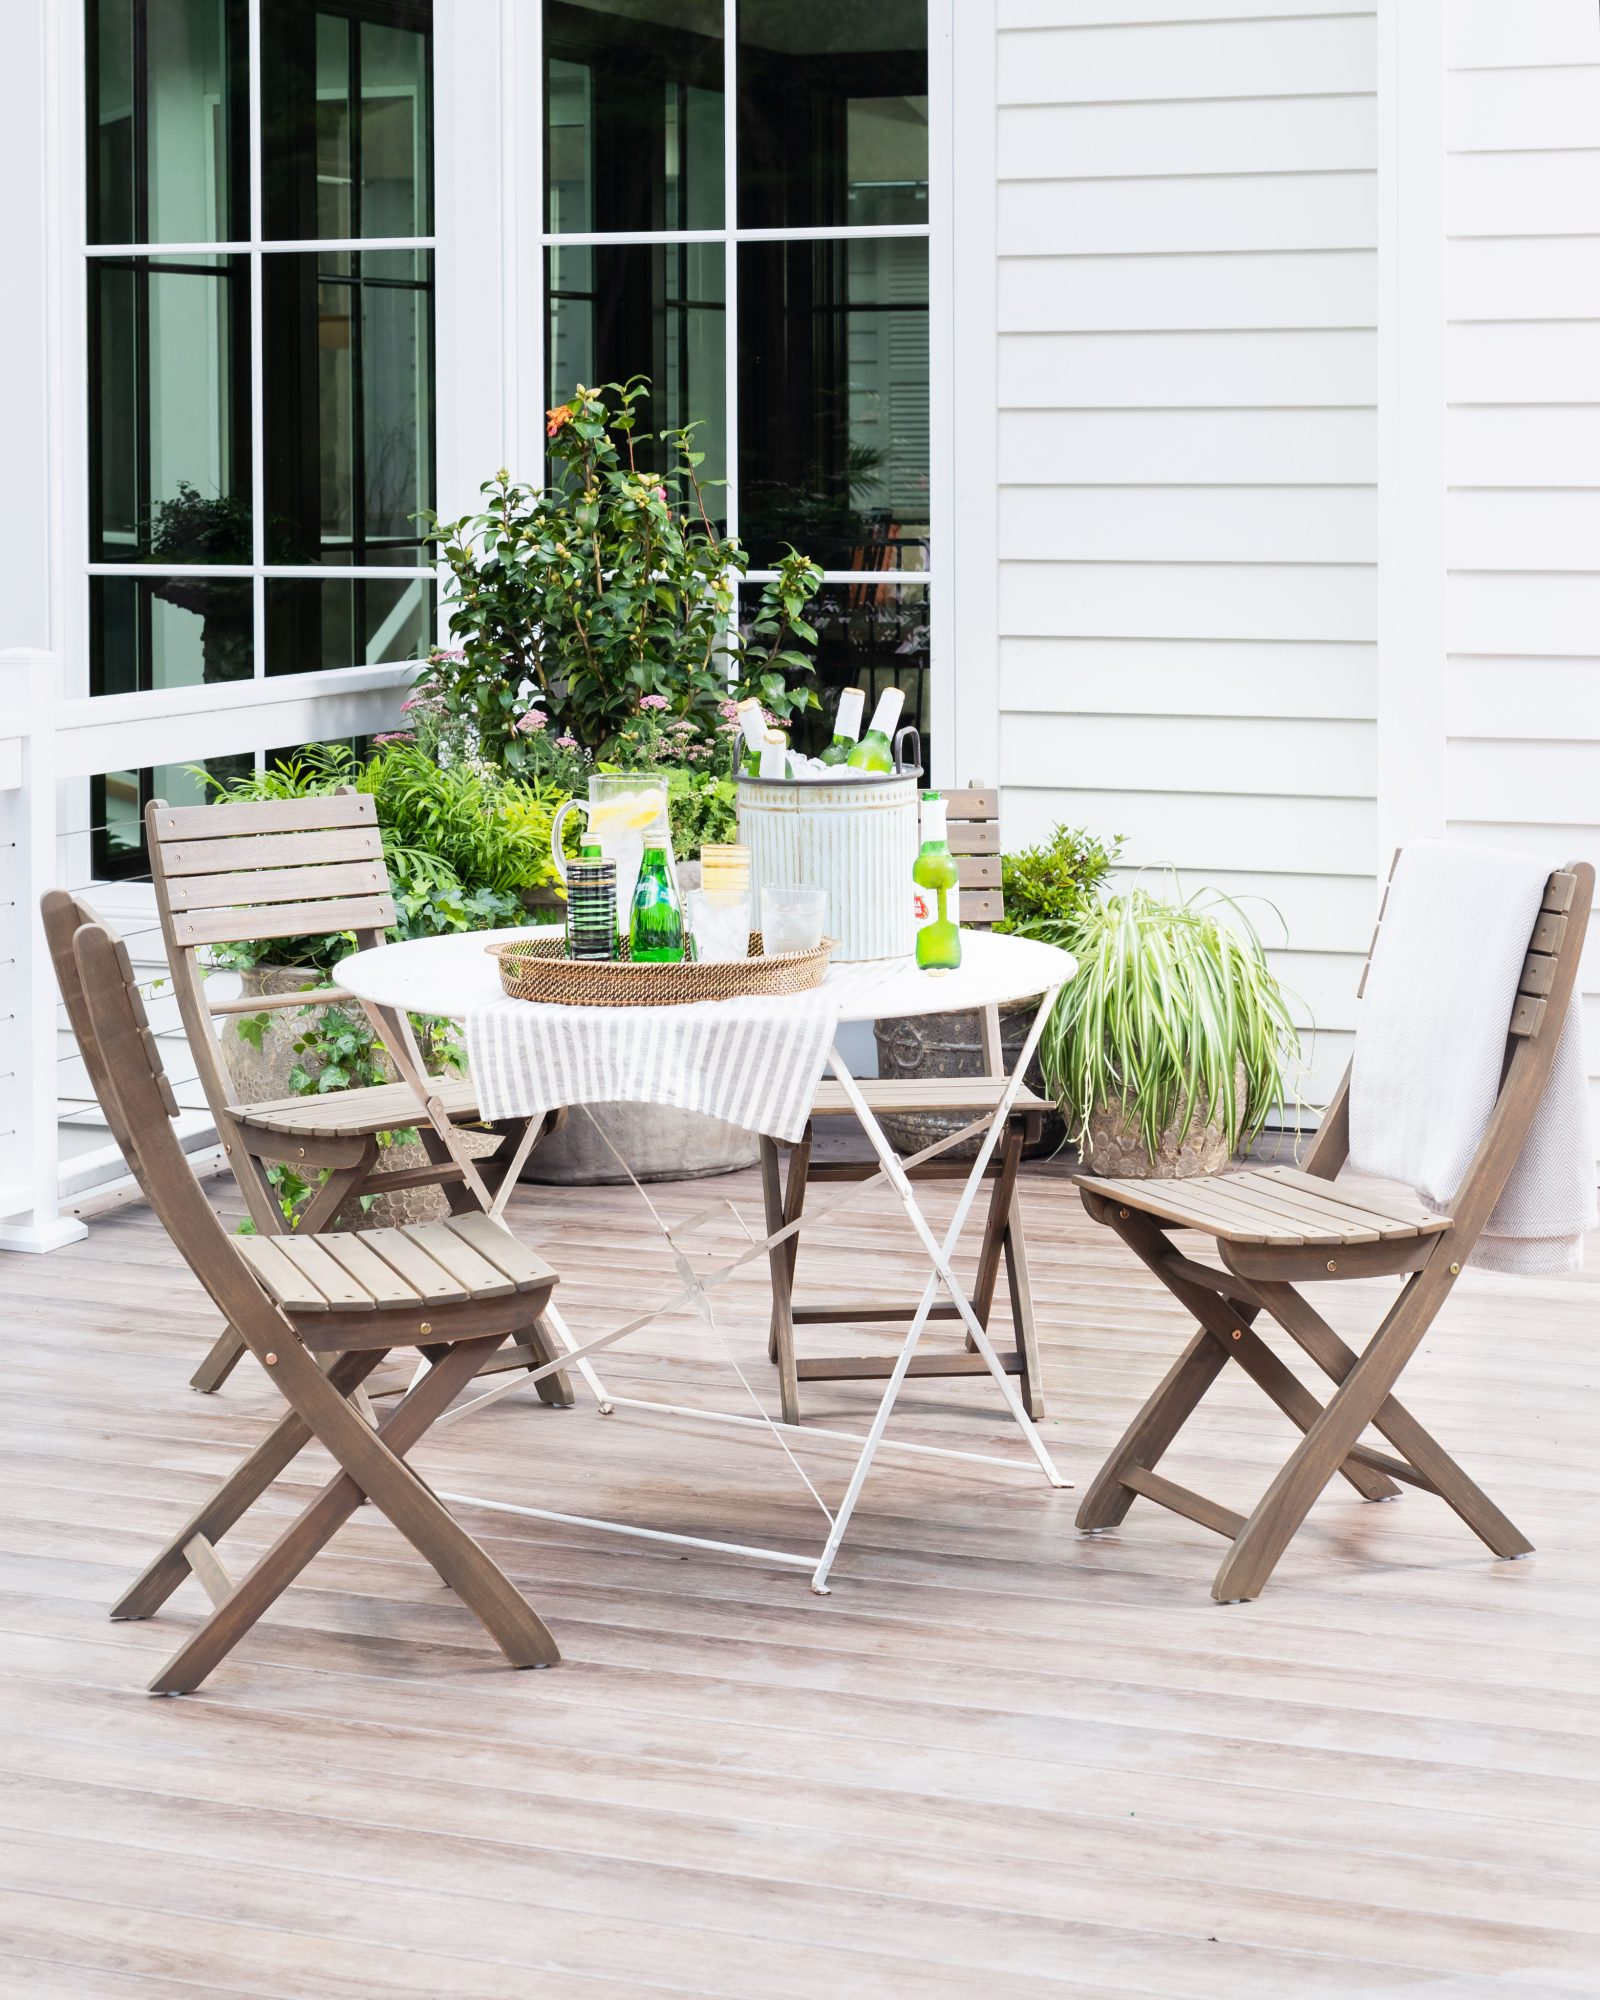 Idea House 2020 Outdoor Bistro Table Sitting Area on Porch